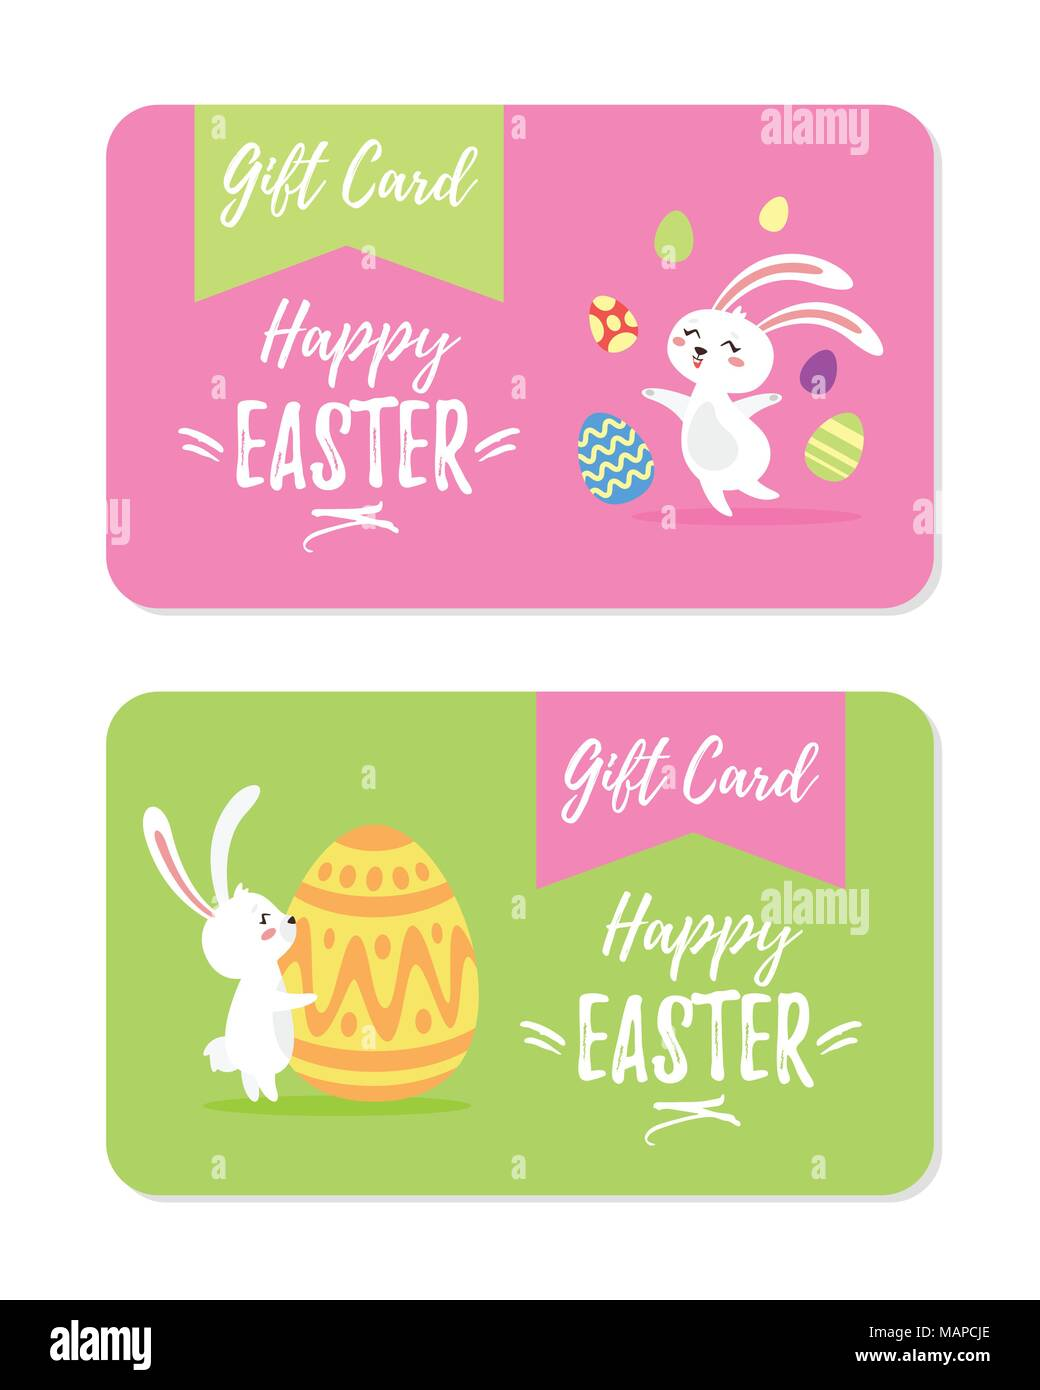 vector cartoon style illustration of happy ester gift cards design